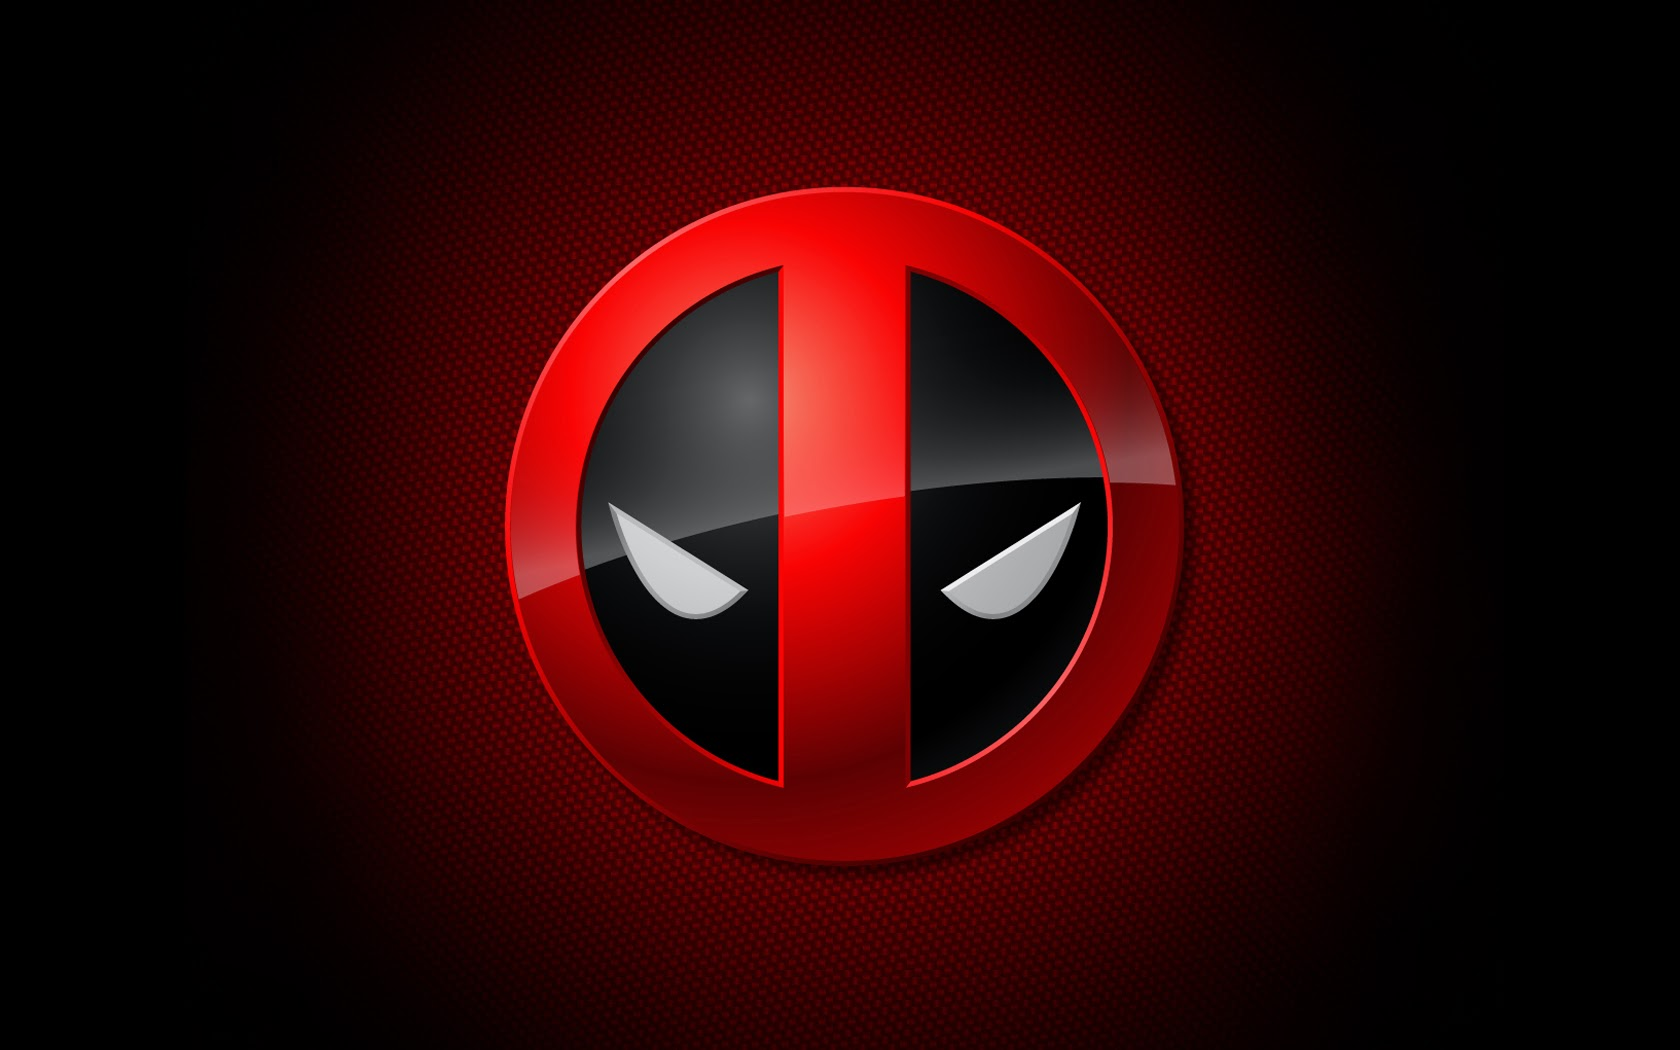 Deadpool Logo Marvel Comics HD Wallpaper 1680x1050 widescreen a70 1680x1050